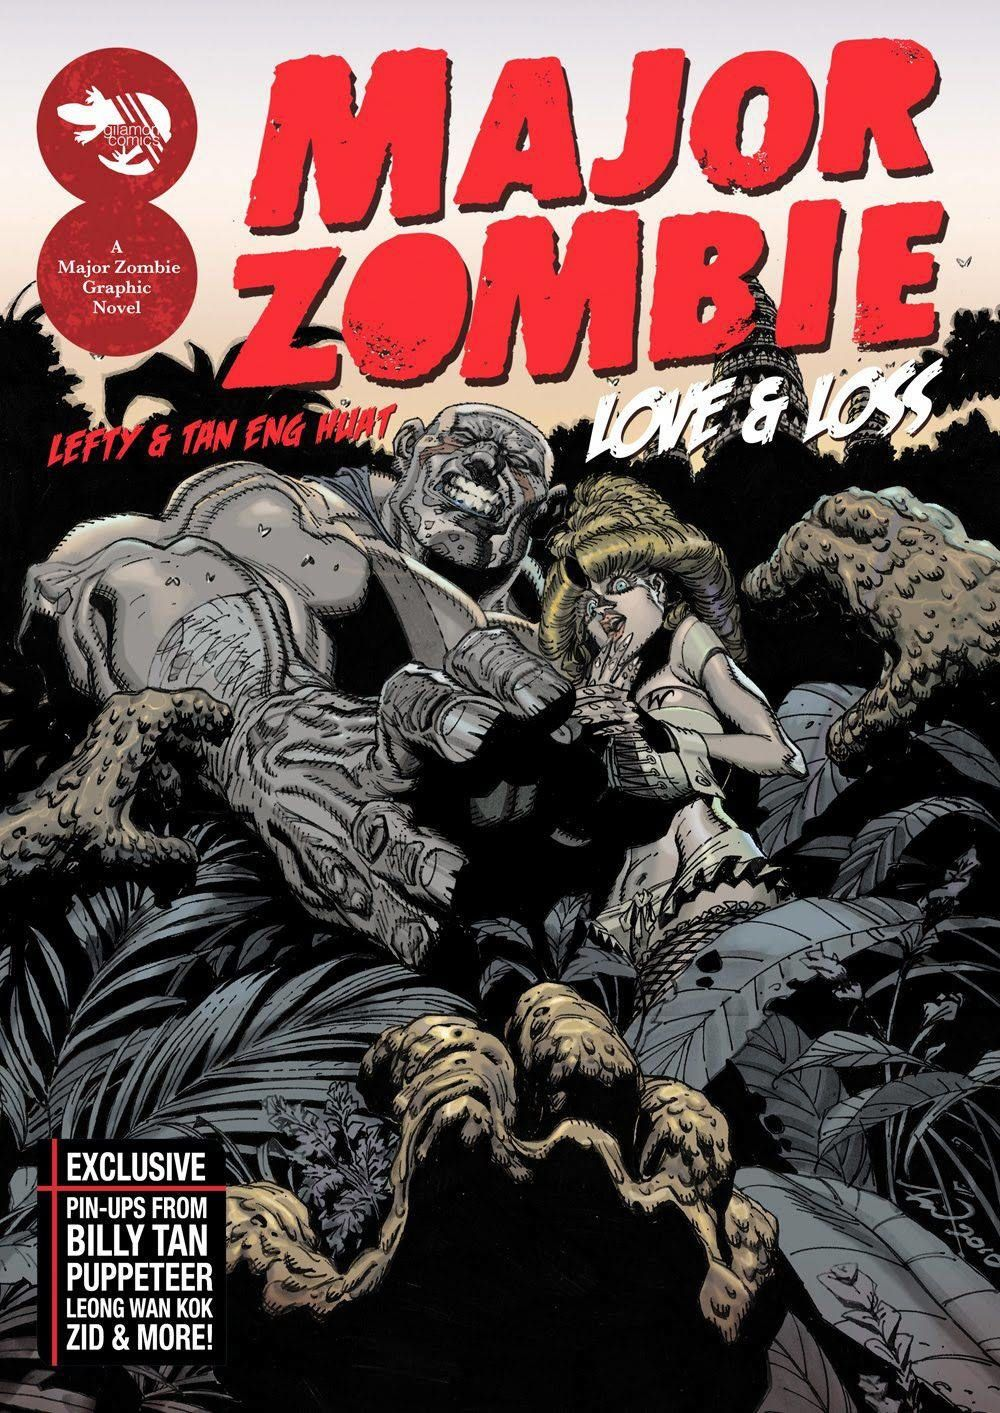 Gilamon Studio's 'Major Zombie: Love And Loss' from 2011, which introduced the masses to Lefty's Major Zombie character (which he created in 2003). Photo: Filepic